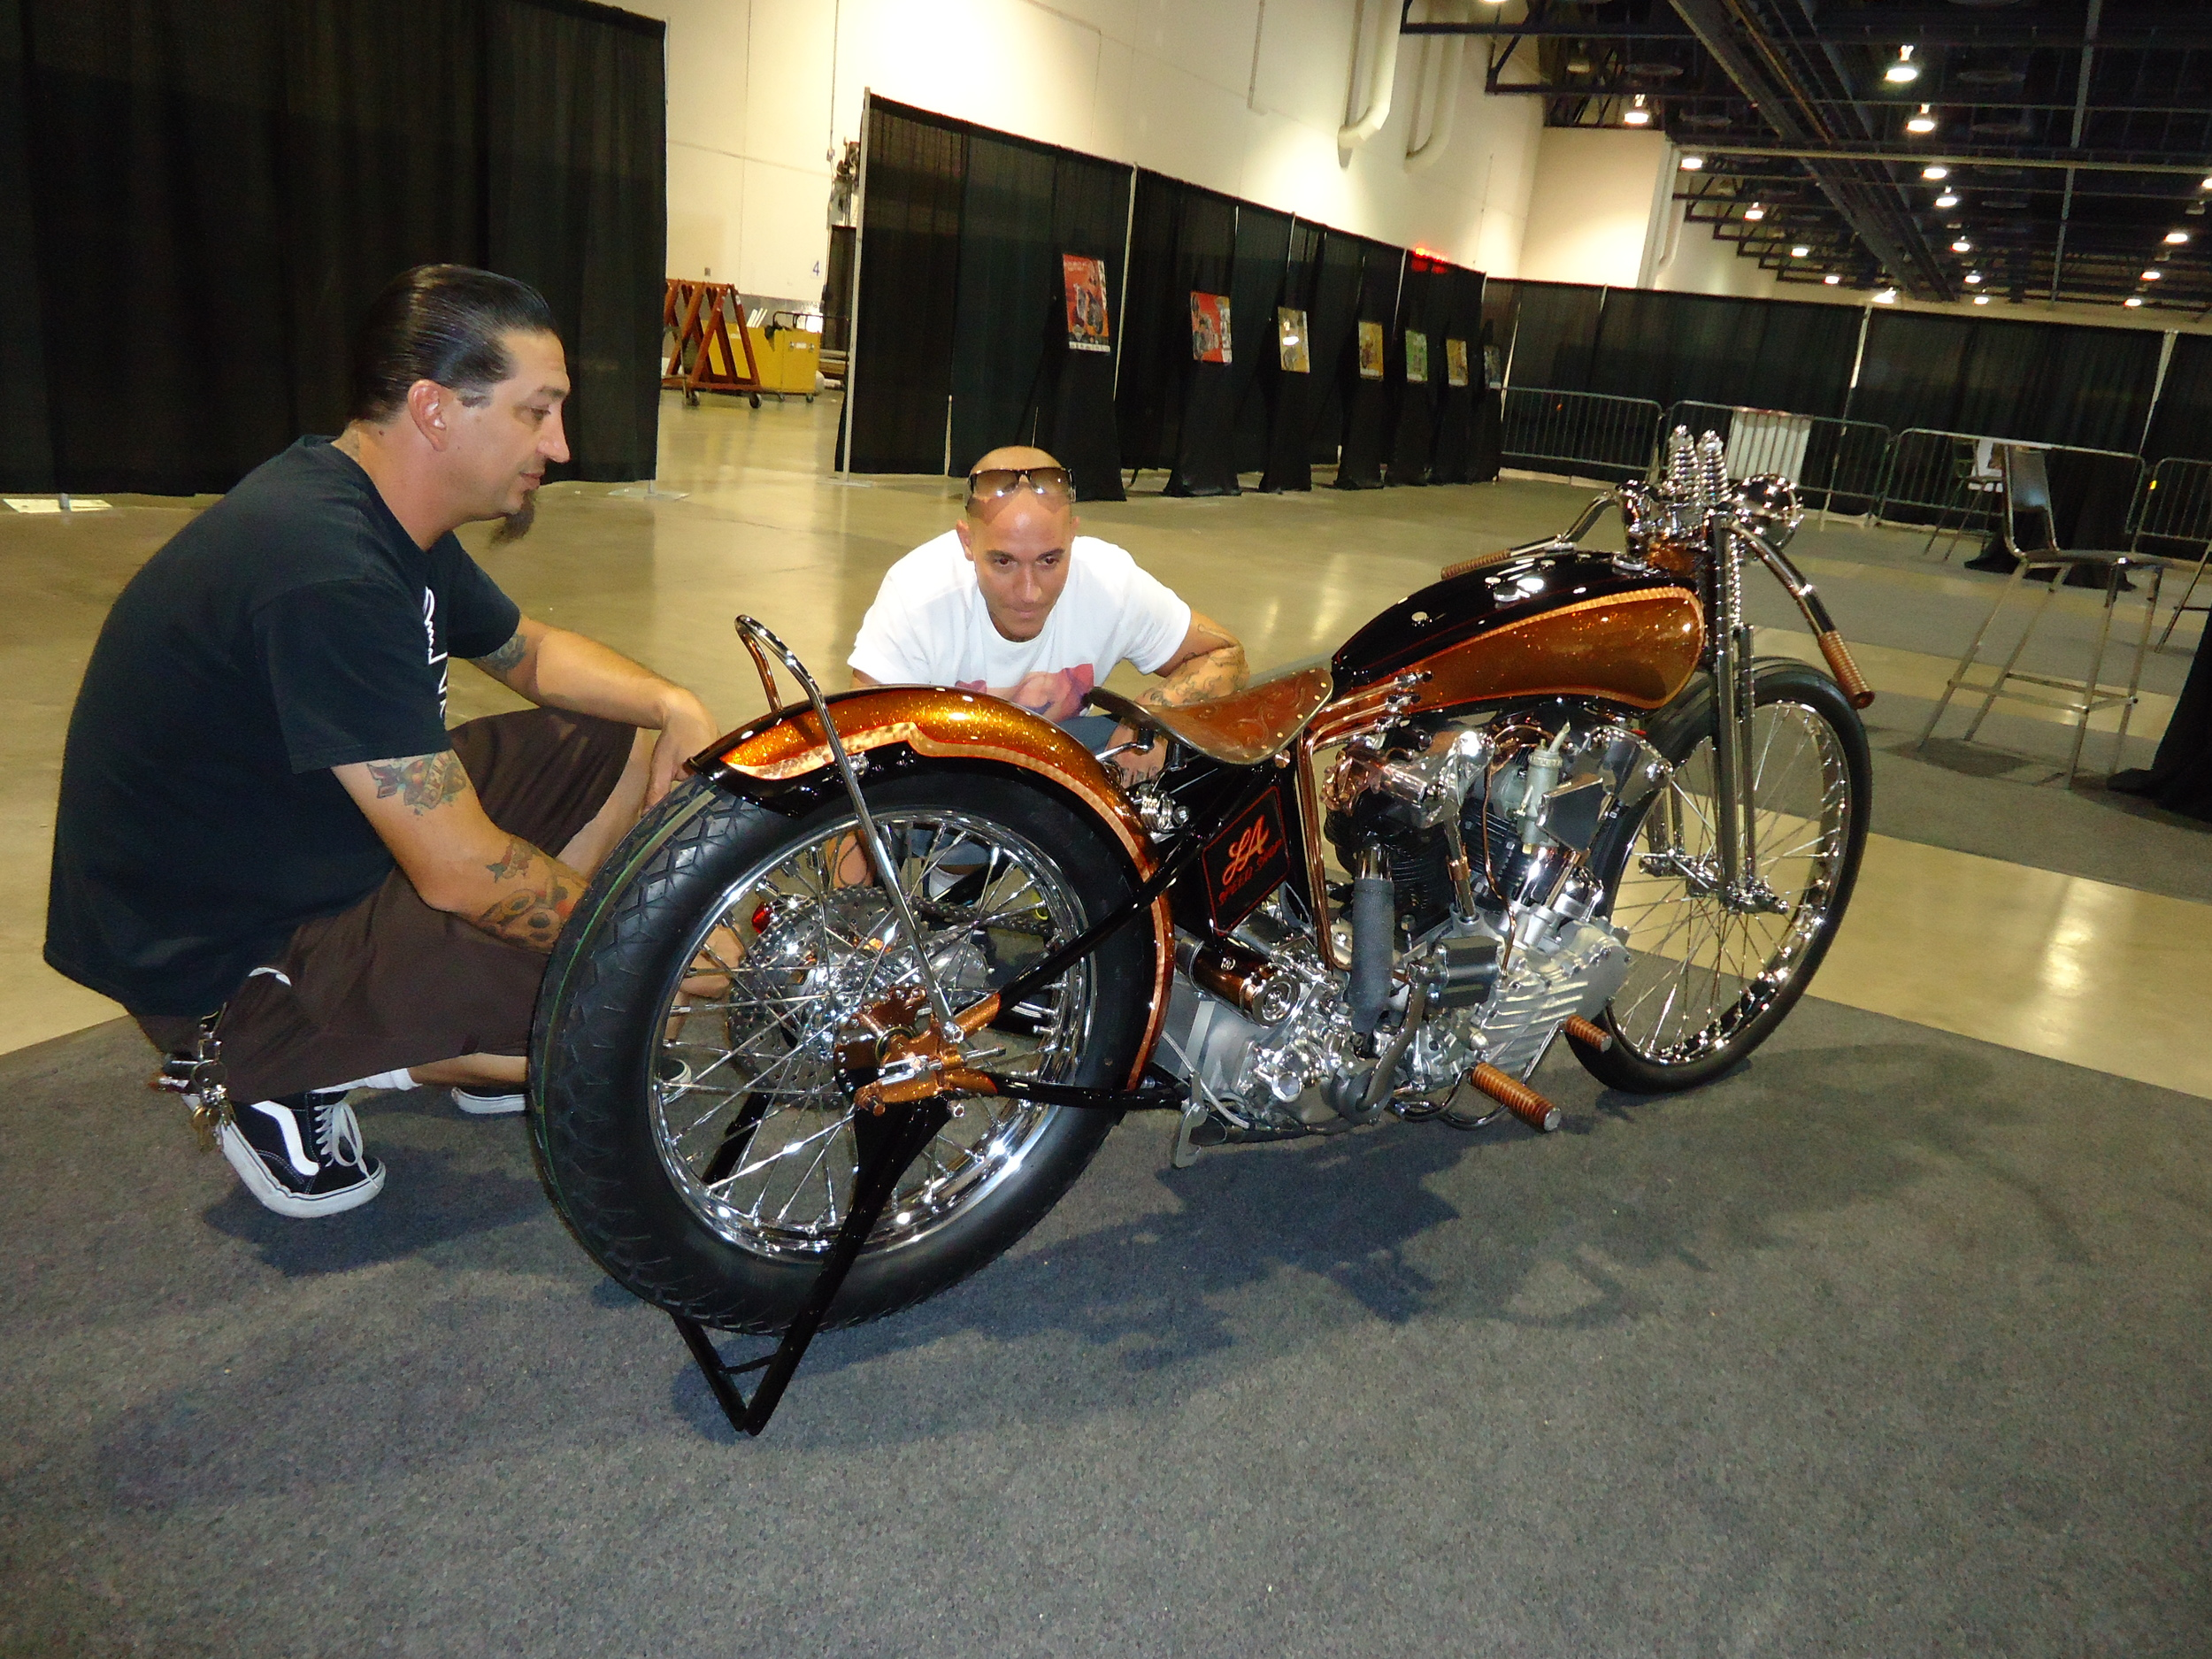 Chris & buddy Danny Schneider checking out the bike